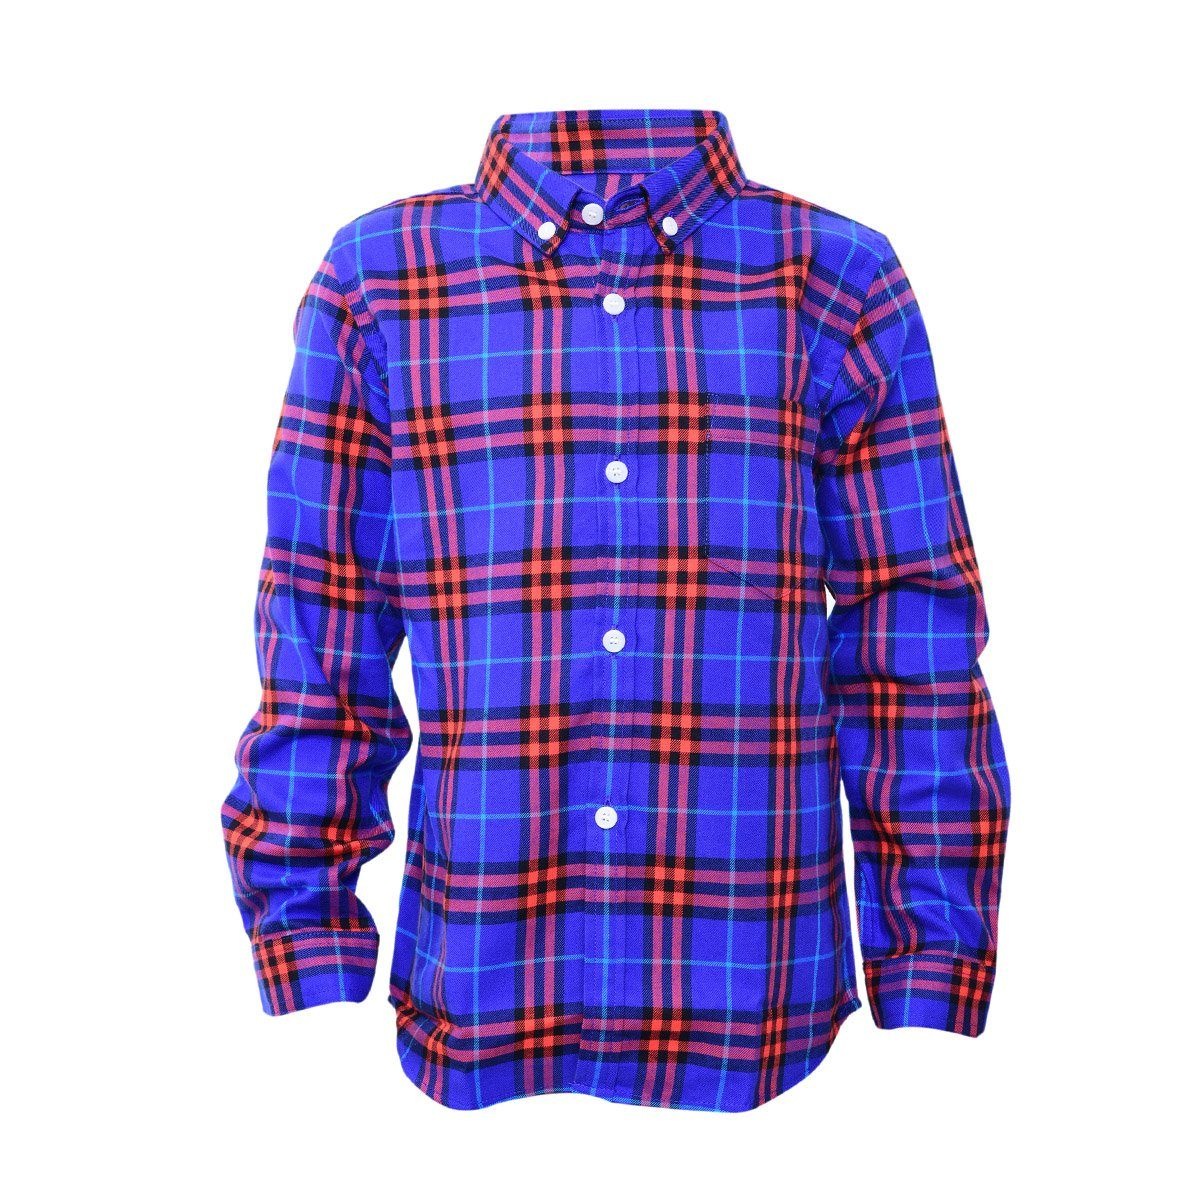 Burberry Shirts For Boy, Blue